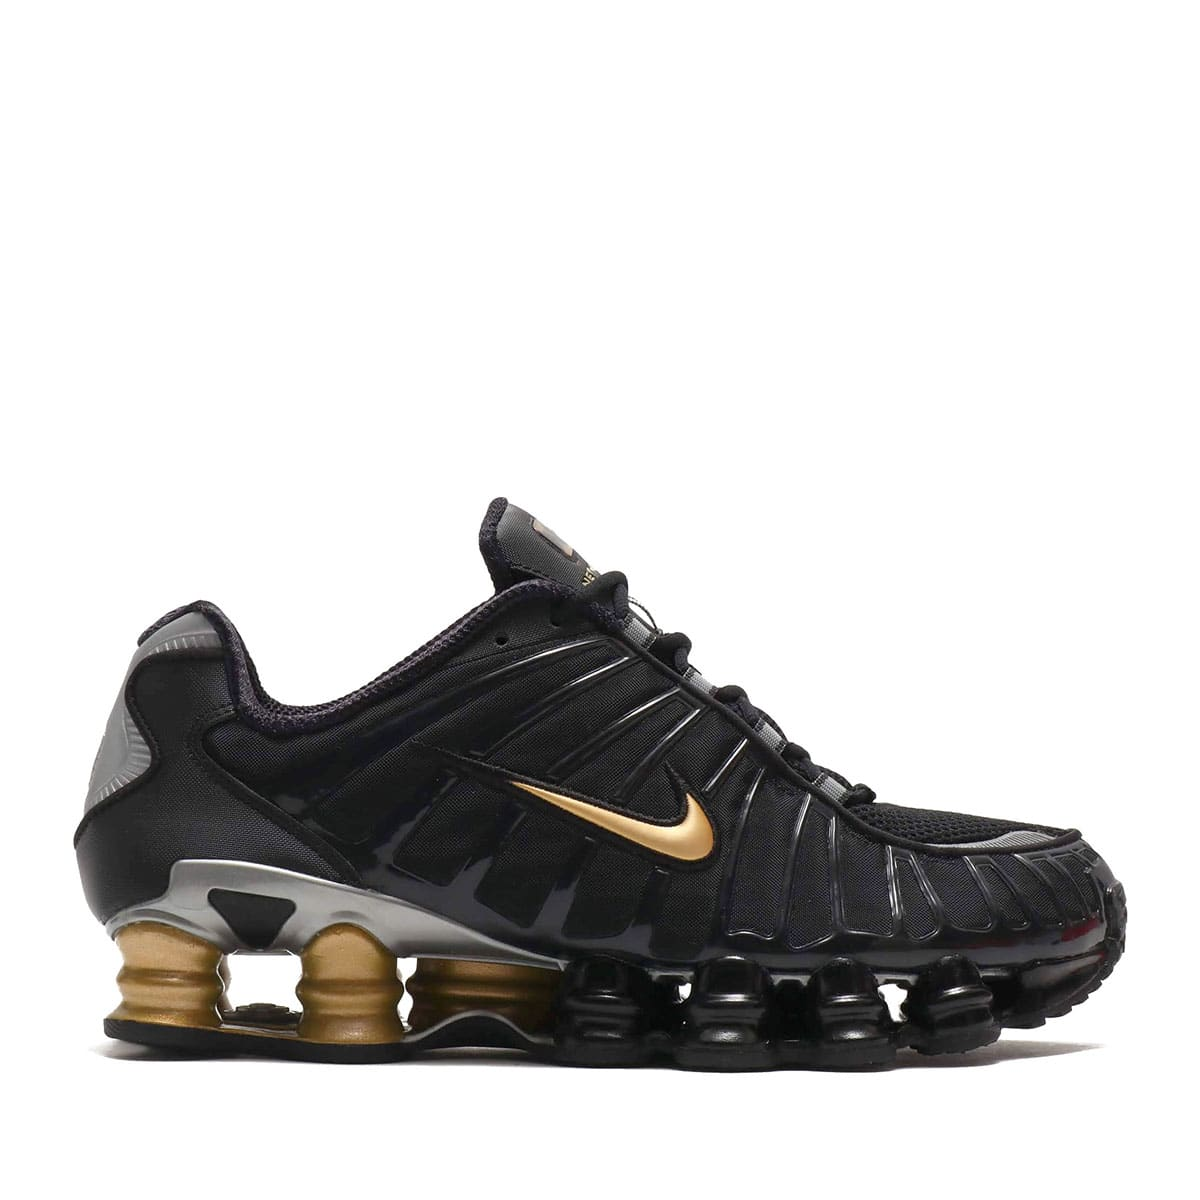 """NIKE SHOX TL / NEYMAR JR. BLACK/METALLIC SILVER-METALLIC GOLD 19FA-S""_photo_2"